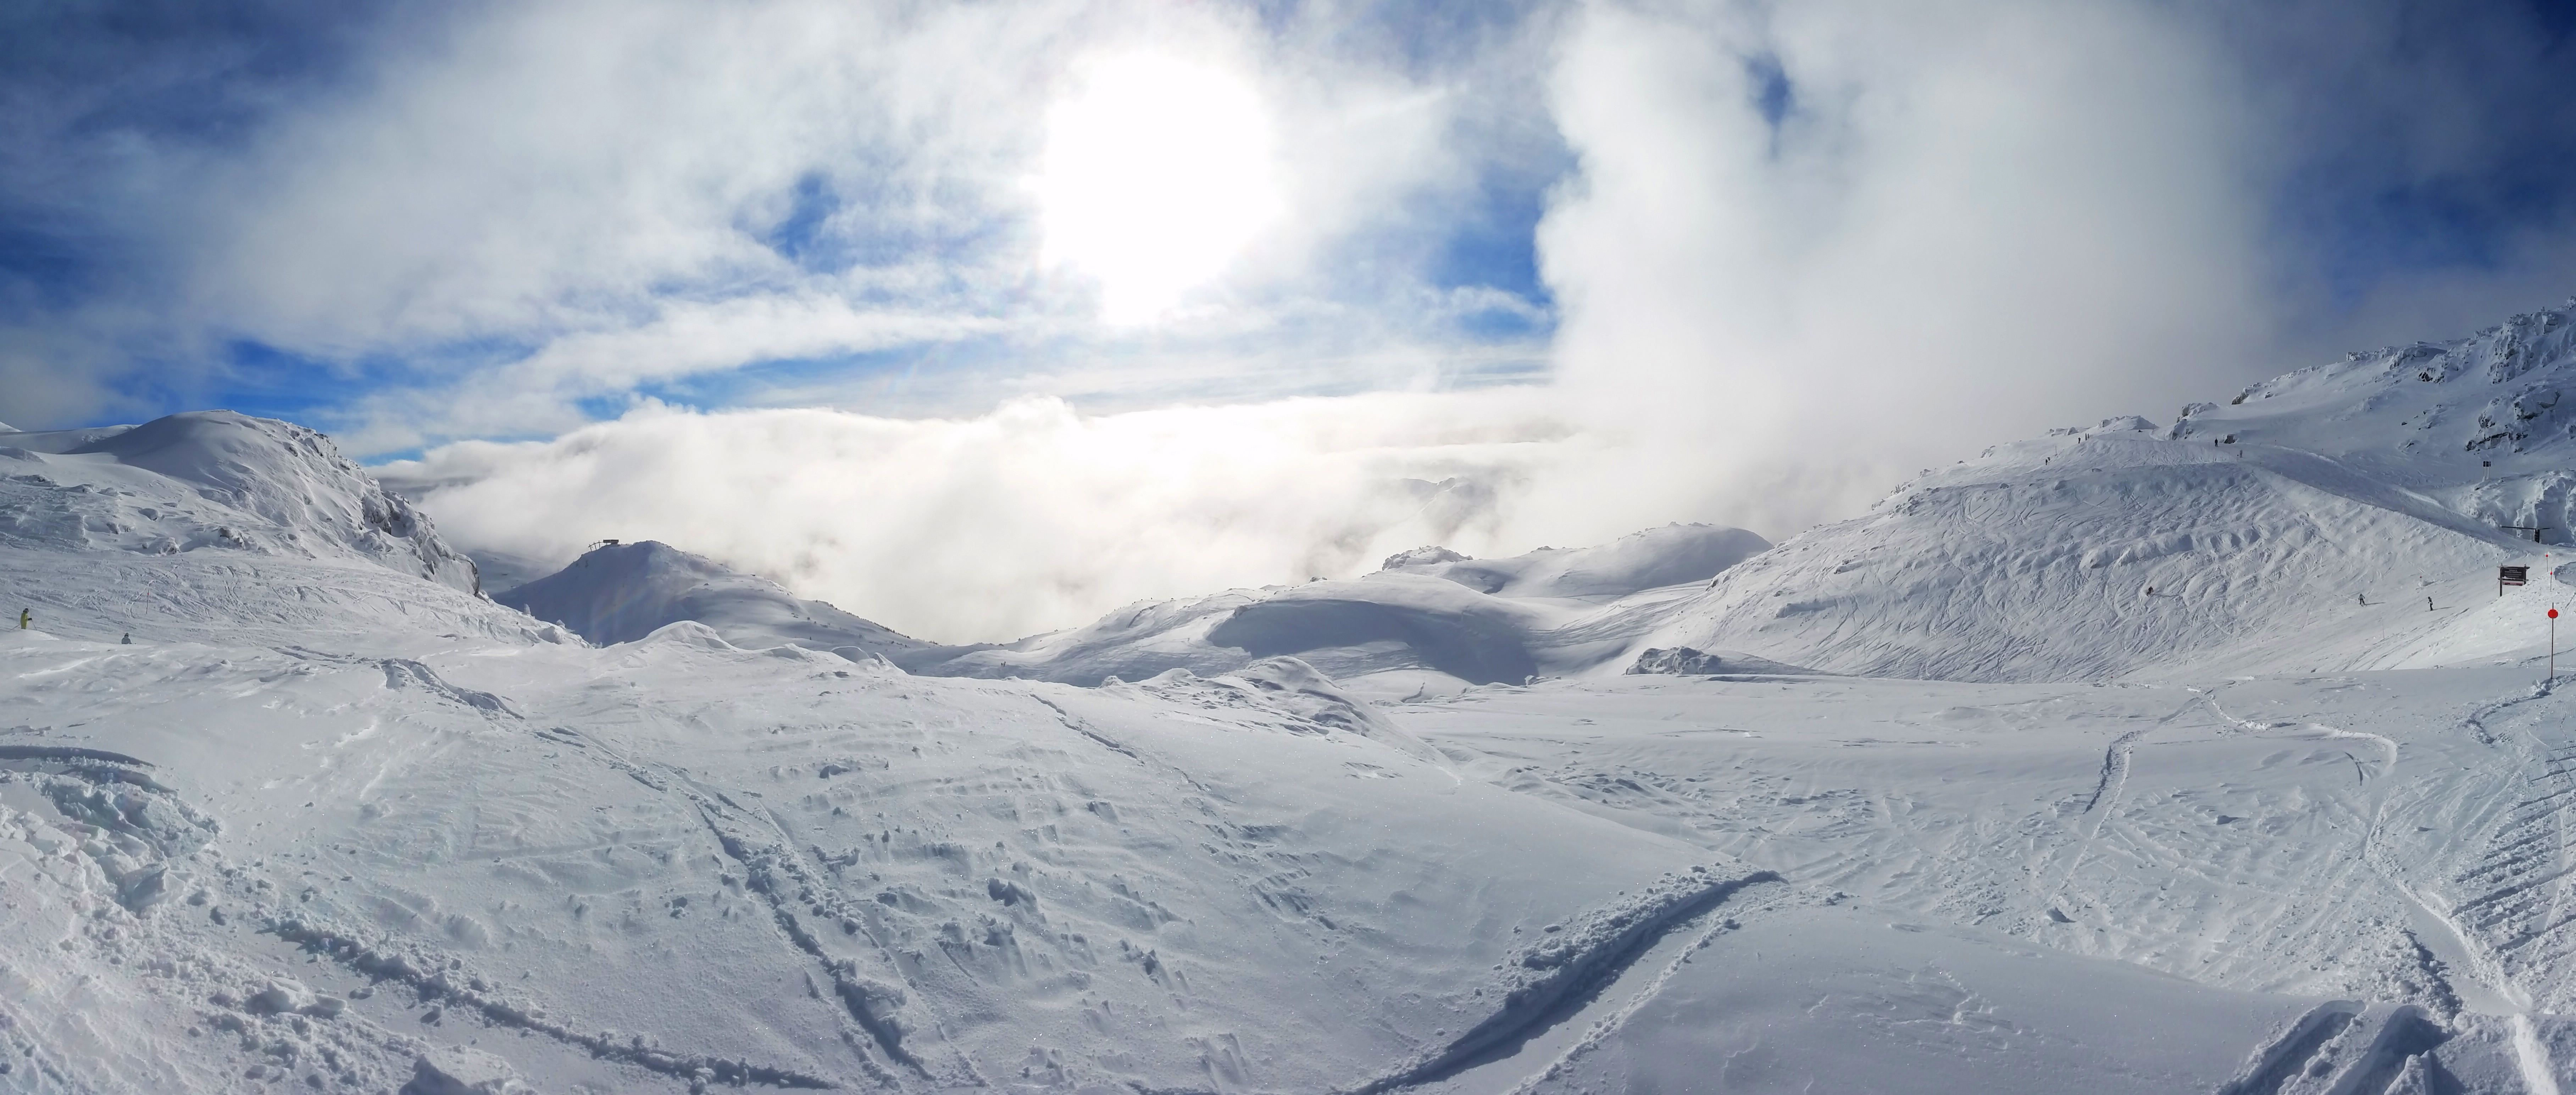 January at the top of Whistler